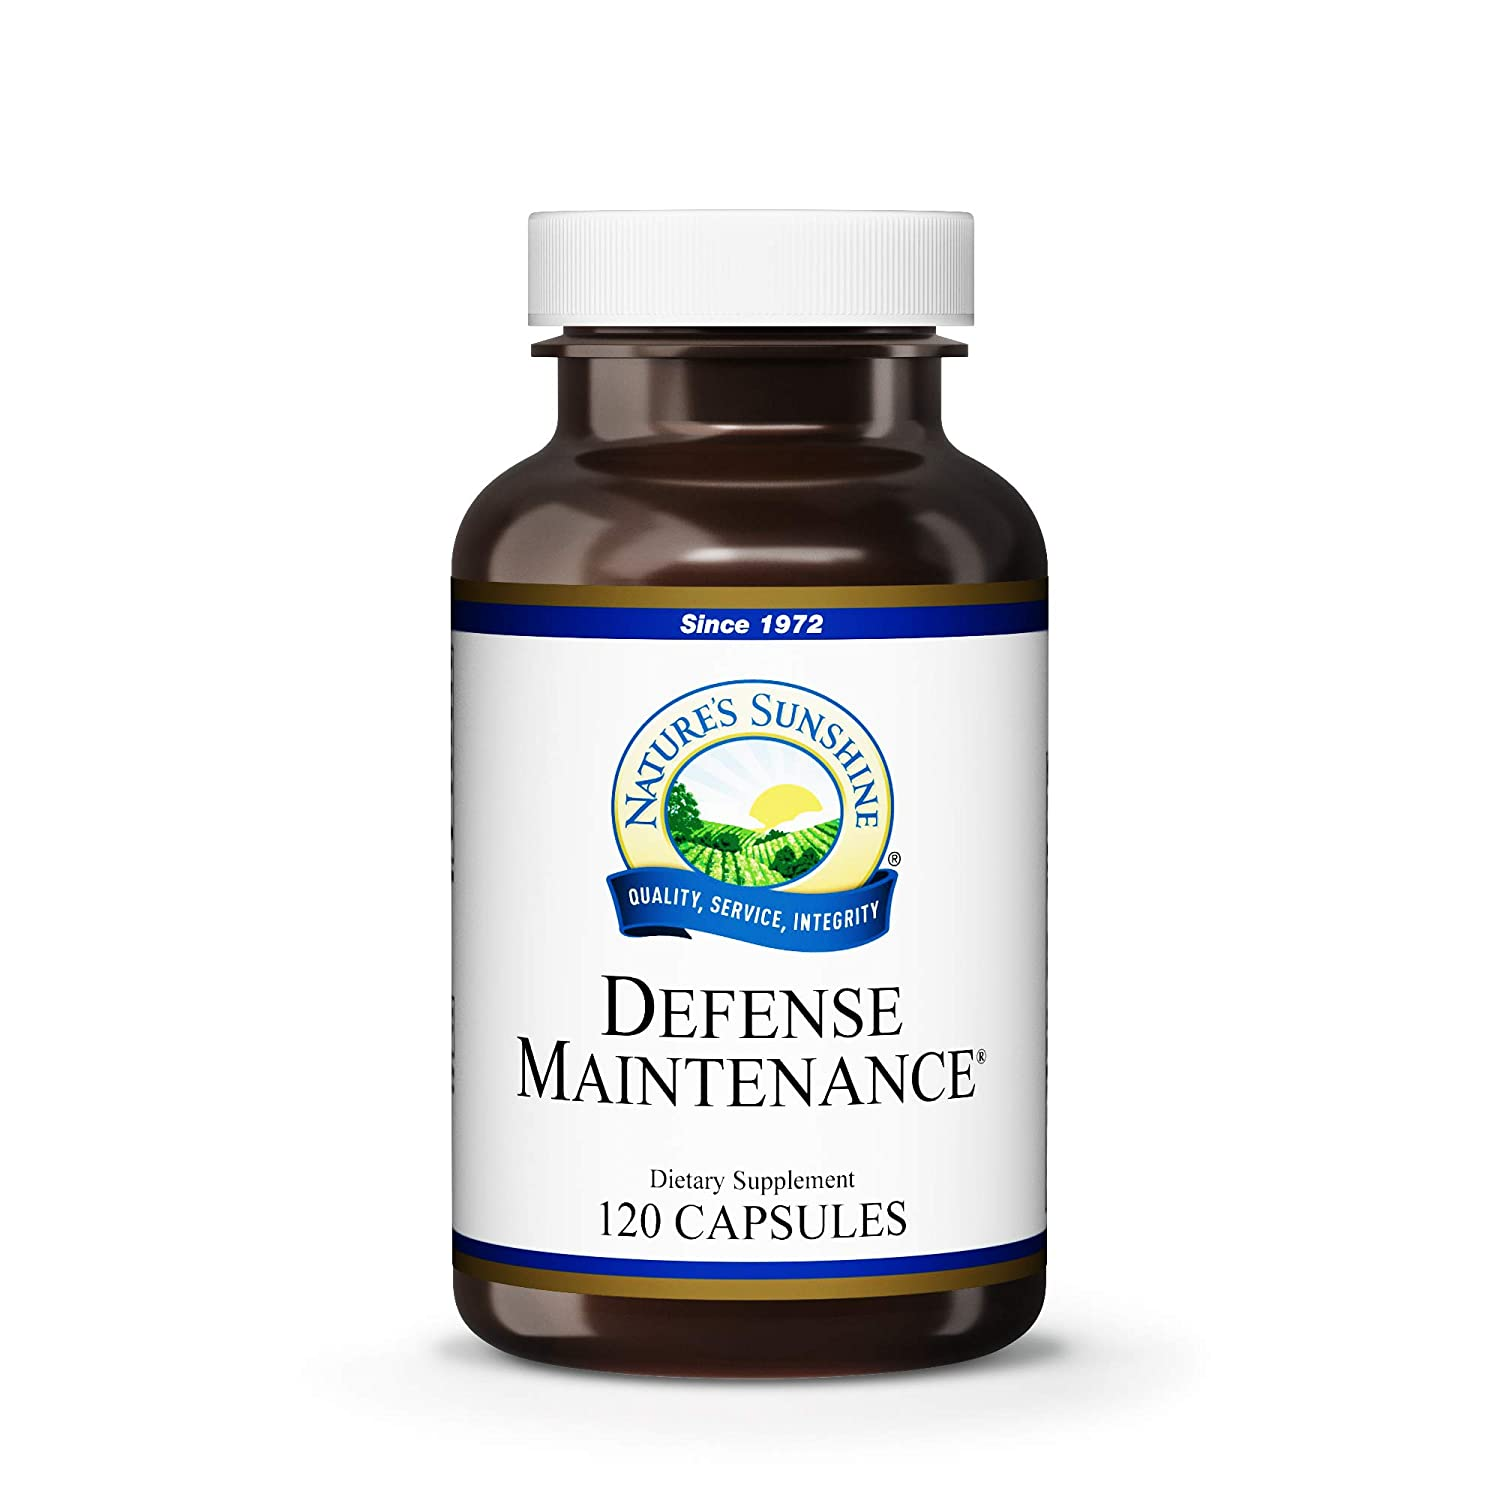 Nature's Sunshine Defense Maintenance, 120 Capsules | Provides Nutritional Support to The Immune System, Contains Antioxidants and Cruciferous Vegetables, and Provides Vitamins A, C and E